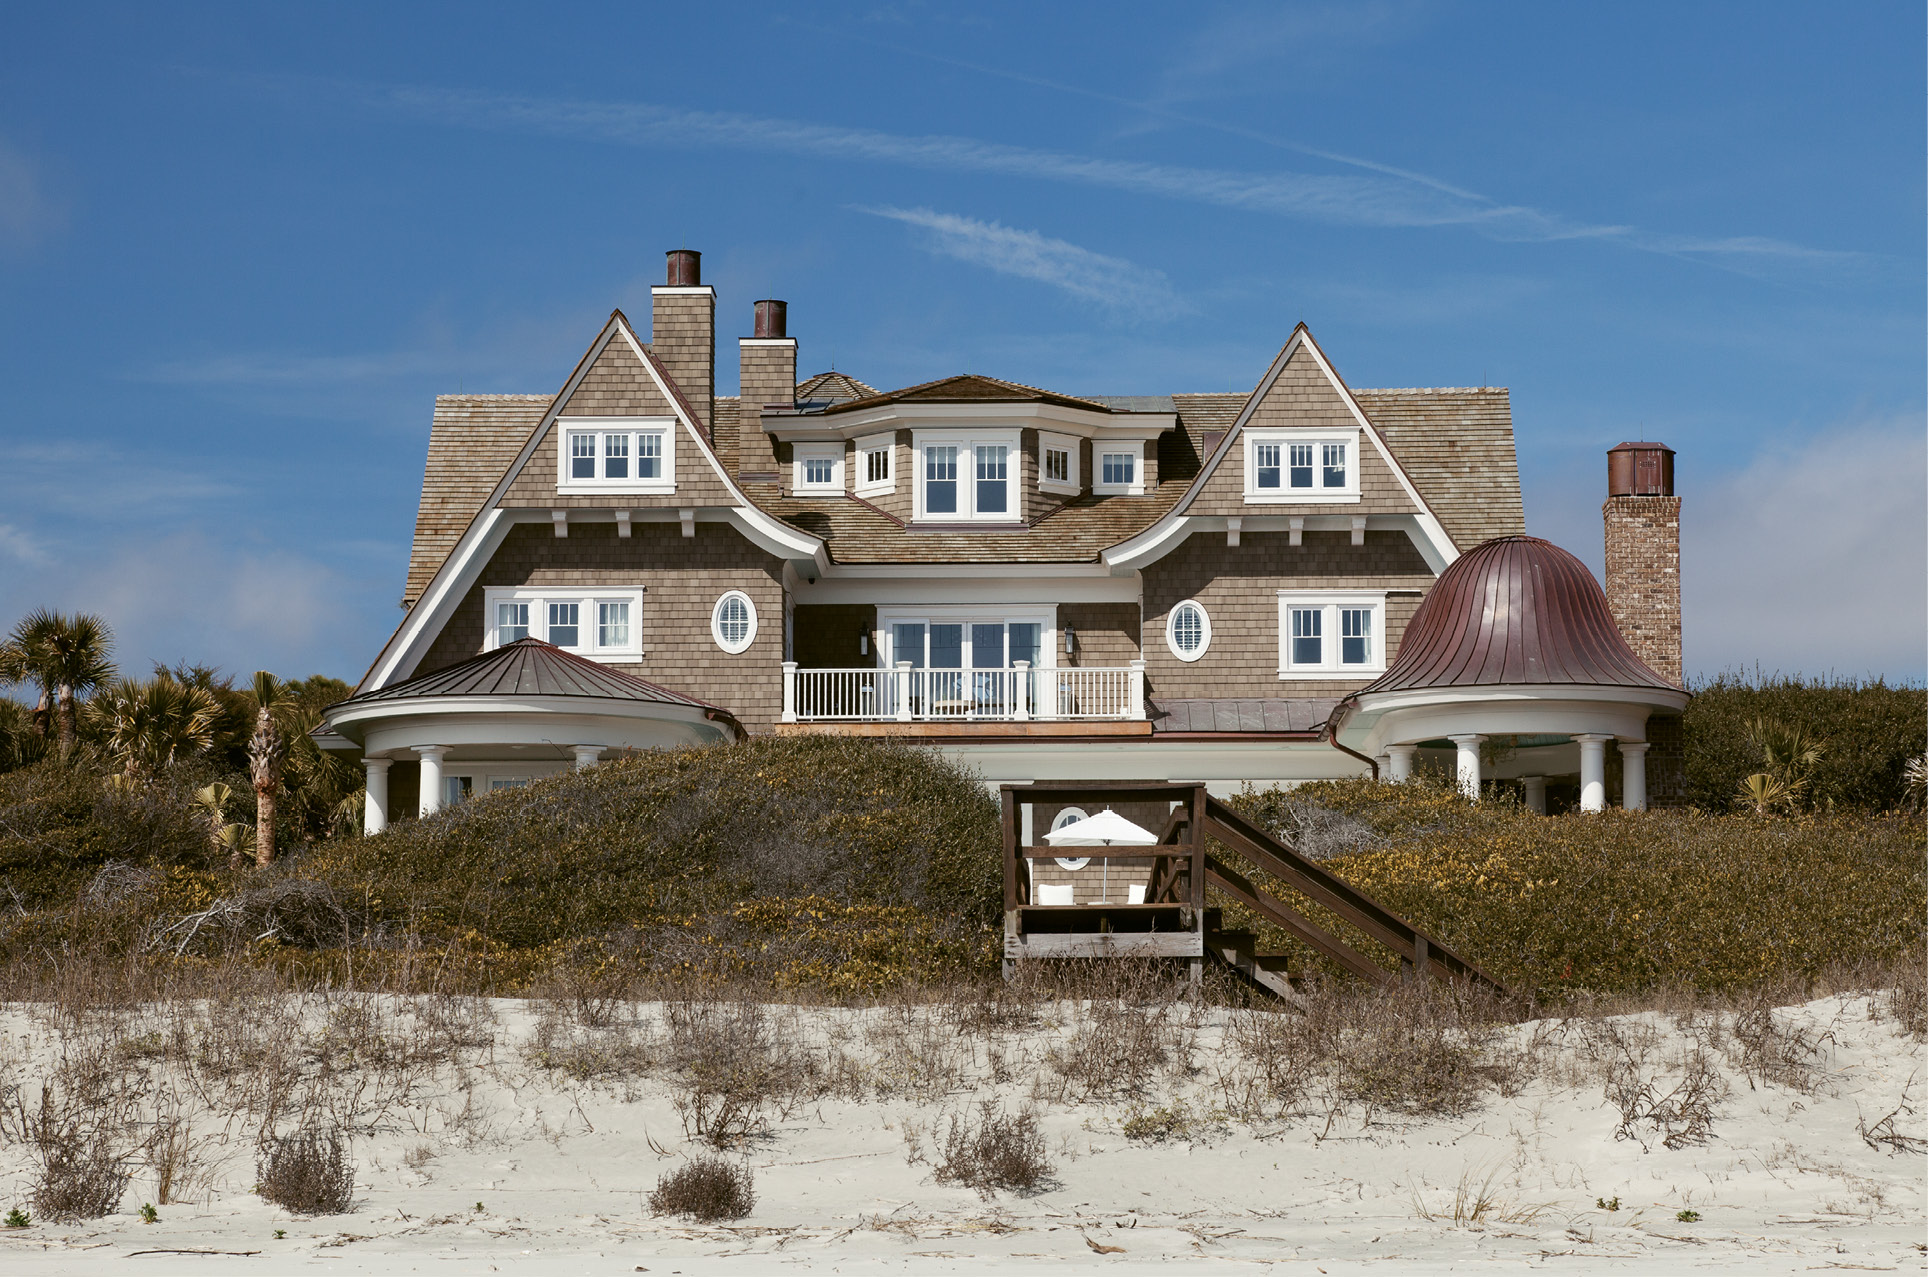 The rear overlooks sand and shore.